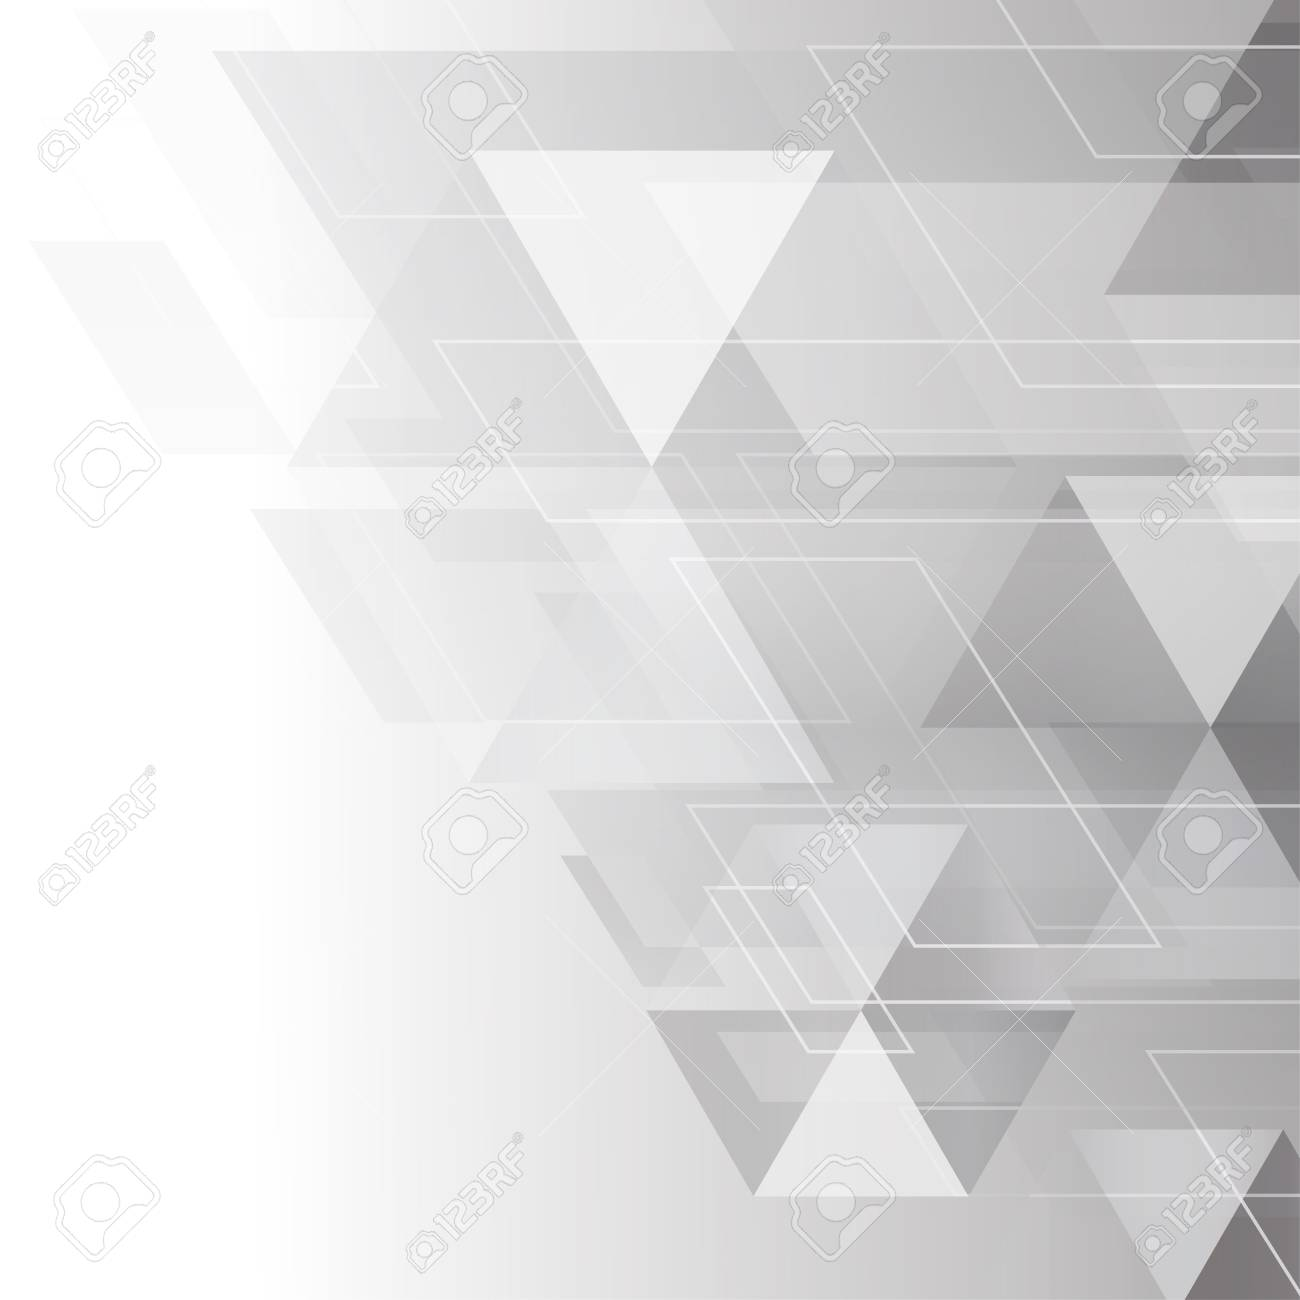 af2750b3ff70 Abstract grey and white tech geometric corporate design background eps 10.Vector  illustration Stock Vector